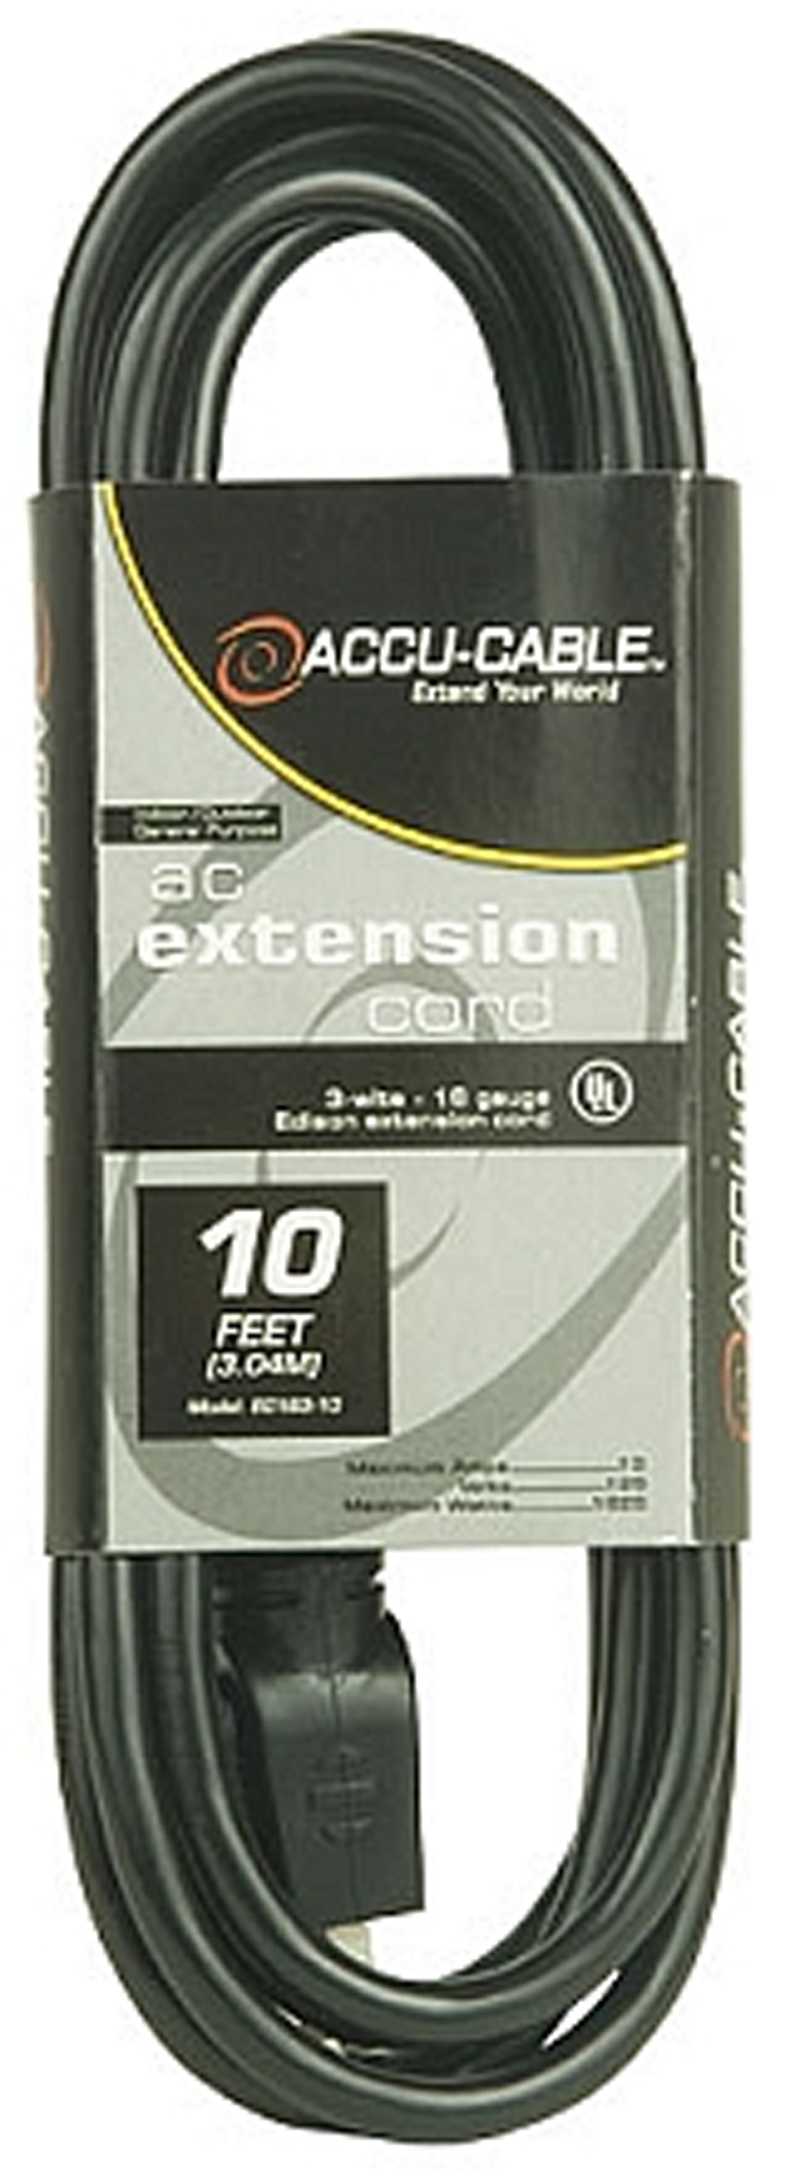 Elation EC163-10 10' Black 16/3 Gauge Extension Cord